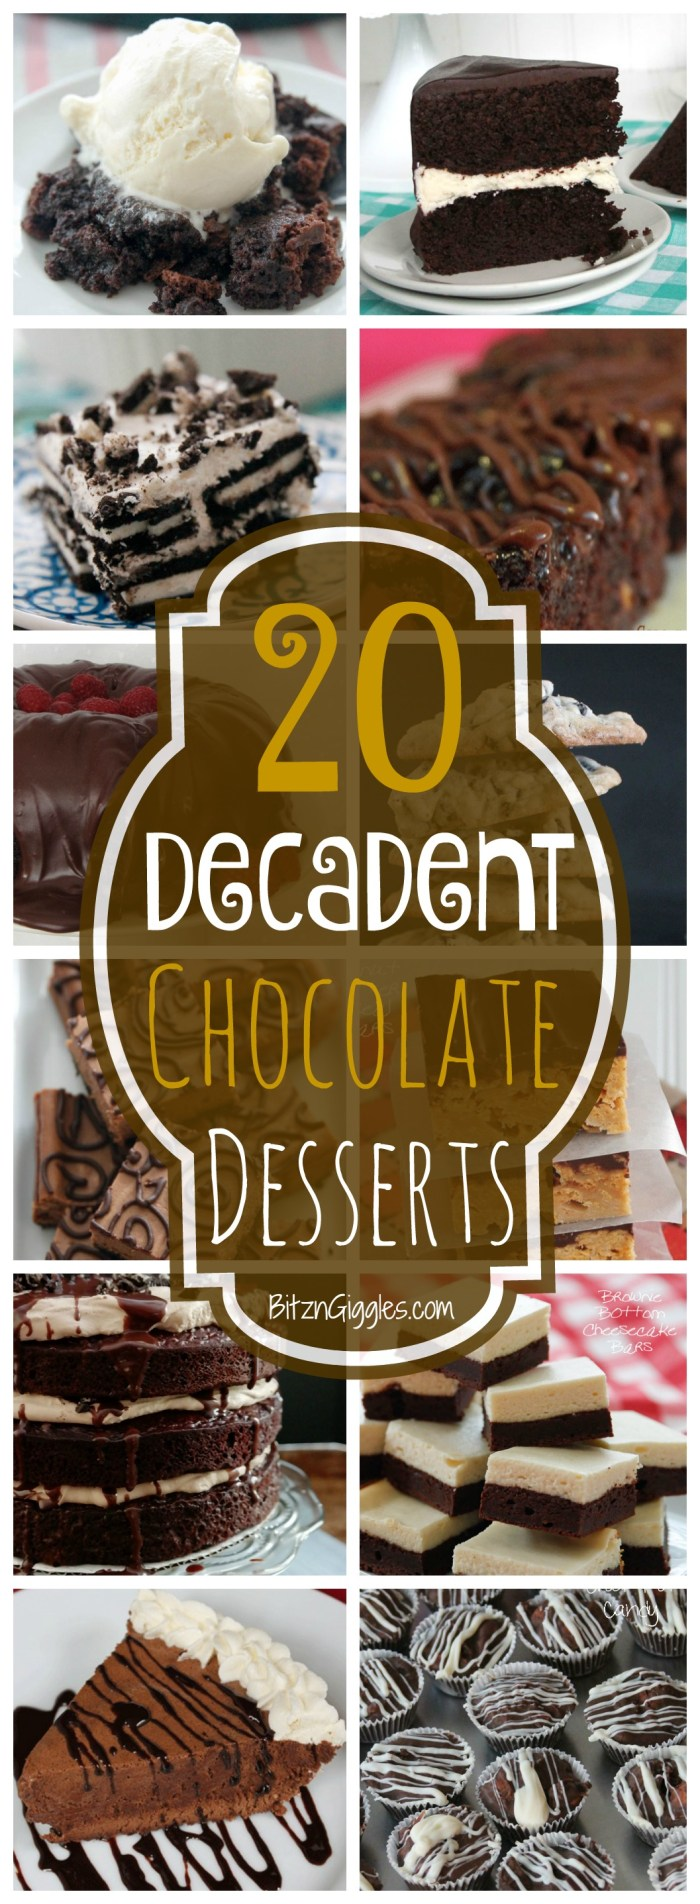 20 Decadent Chocolate Desserts - A collection of chocolate cakes, pies, cookies and bars that will make you drool! Which one will you make first?!